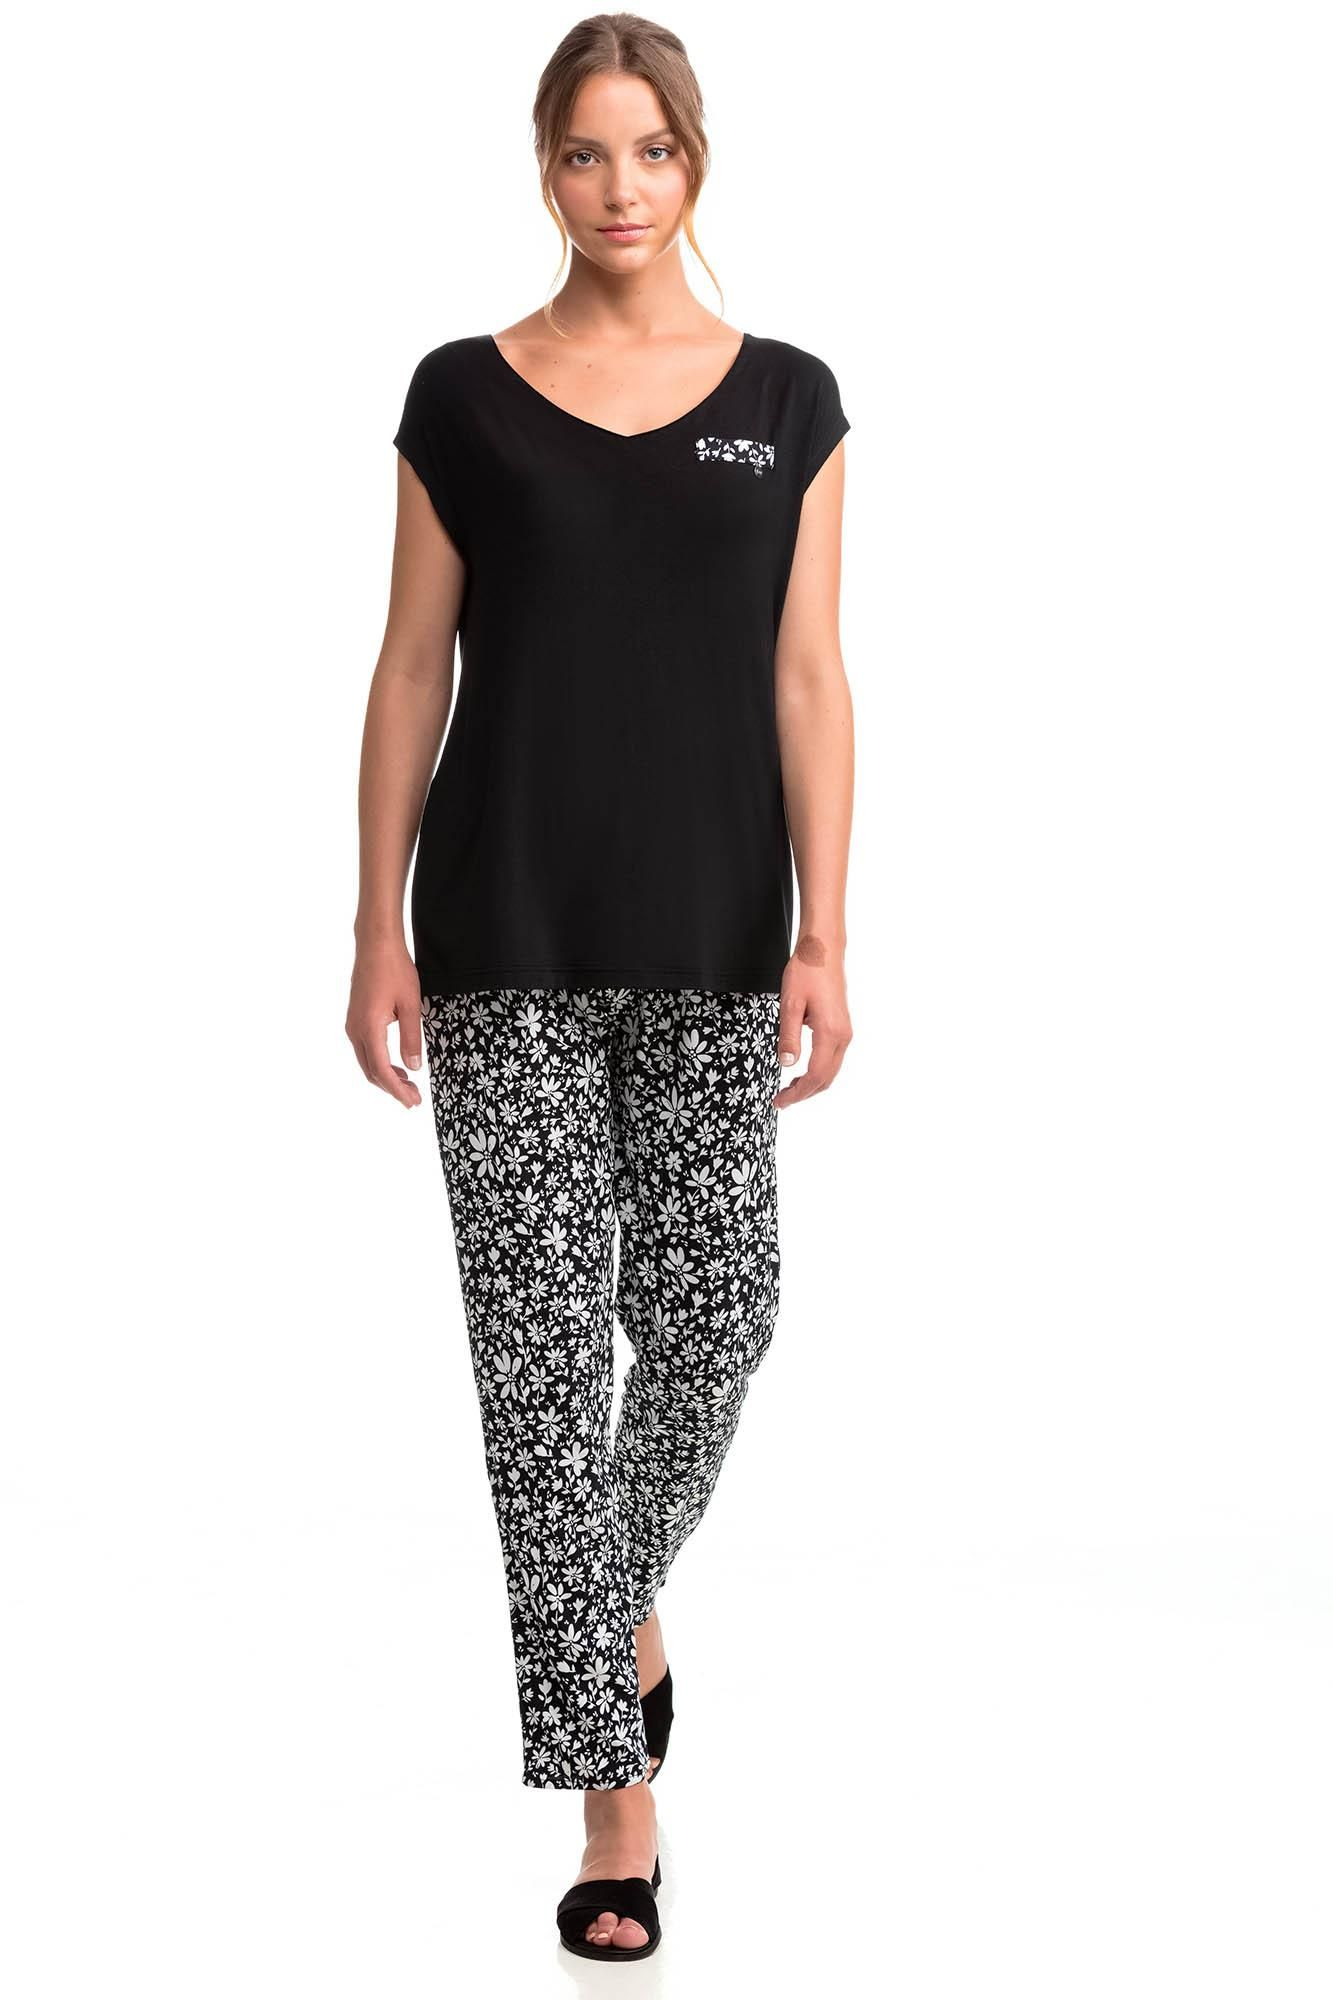 Women's Top and Floral Bottoms